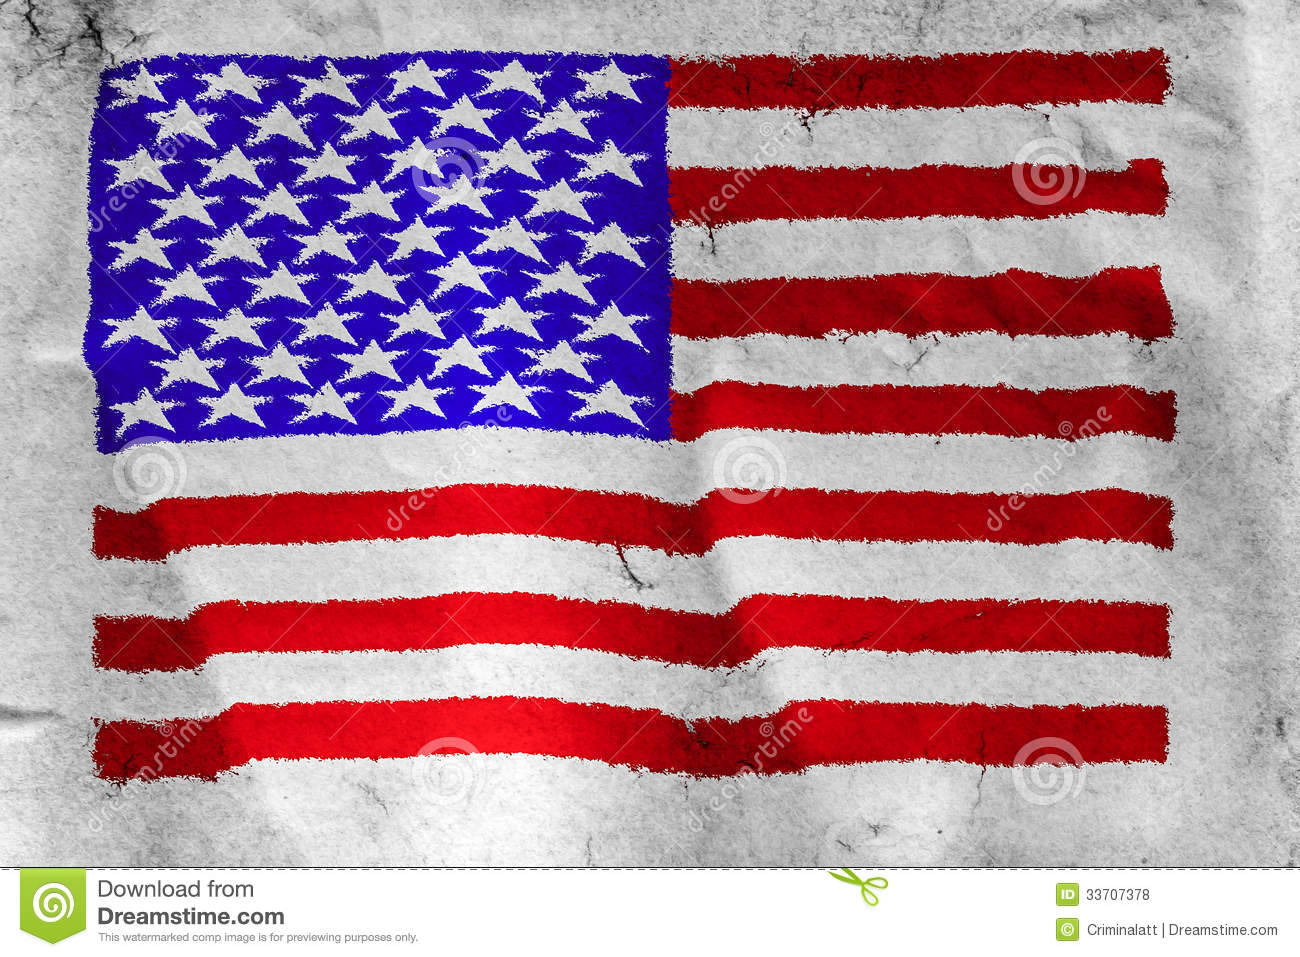 american flag hd texture - photo #40